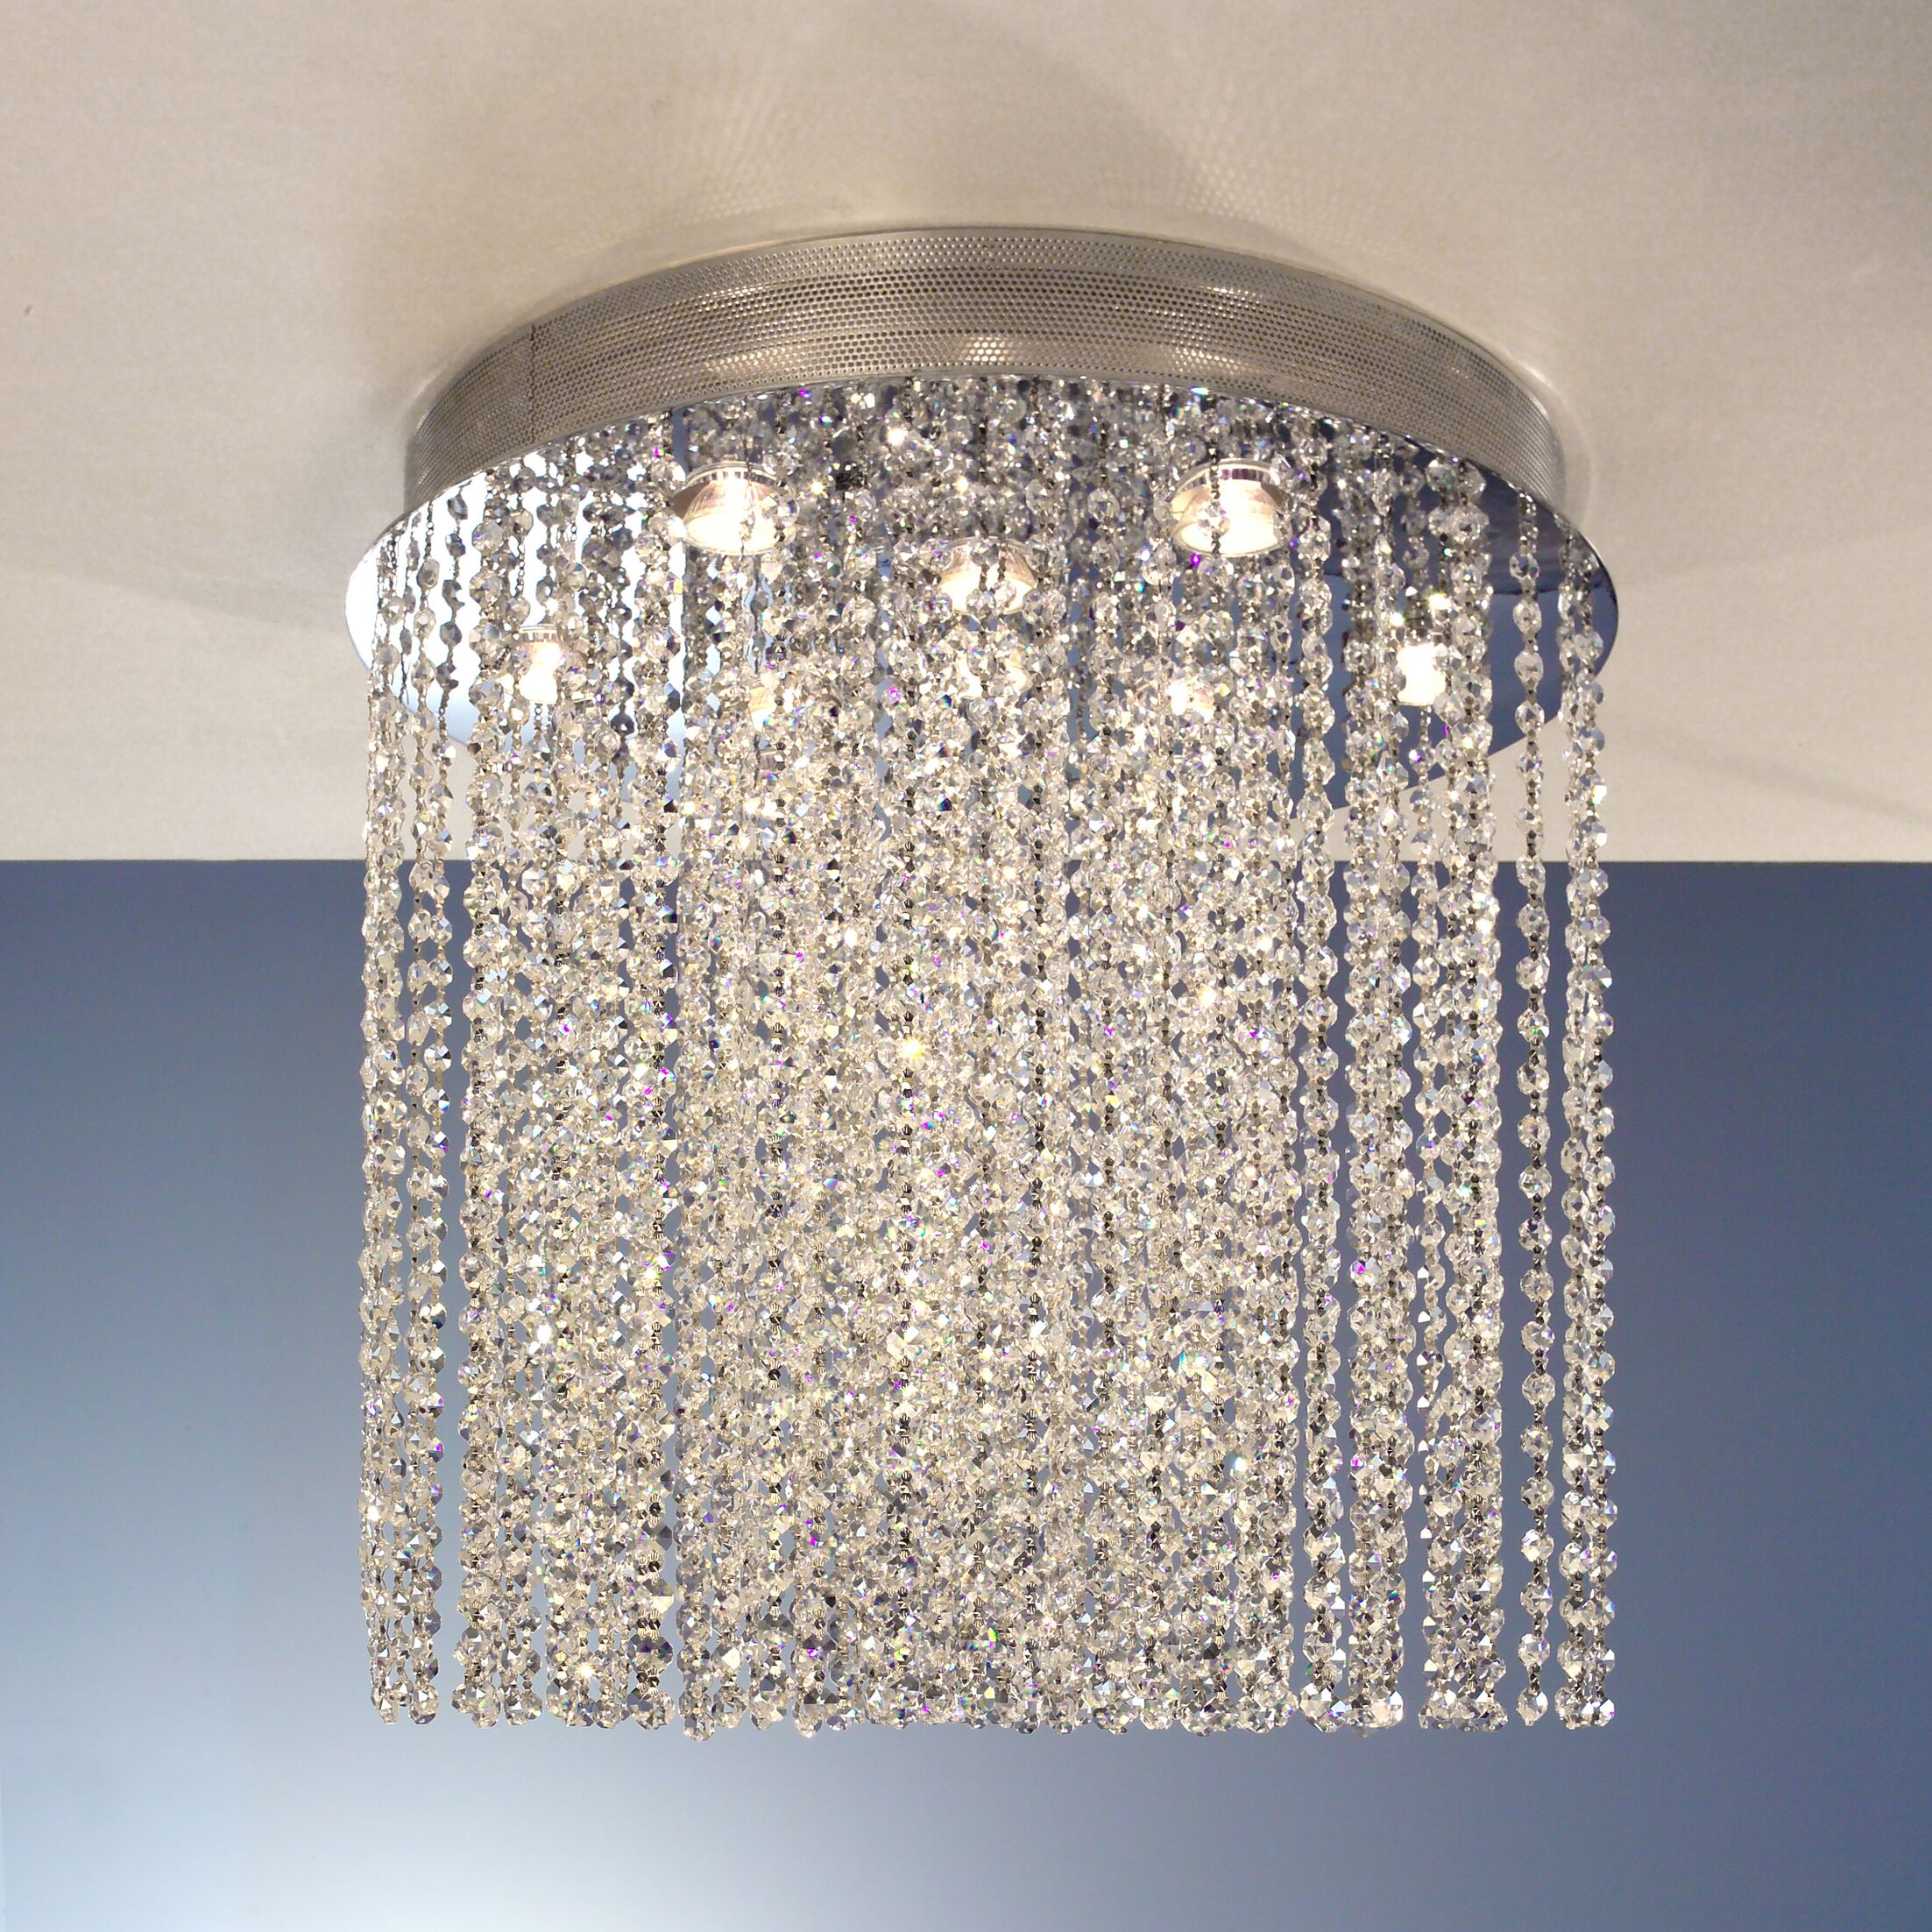 Crystal Rain 10-Light Flush Mount Height: 24